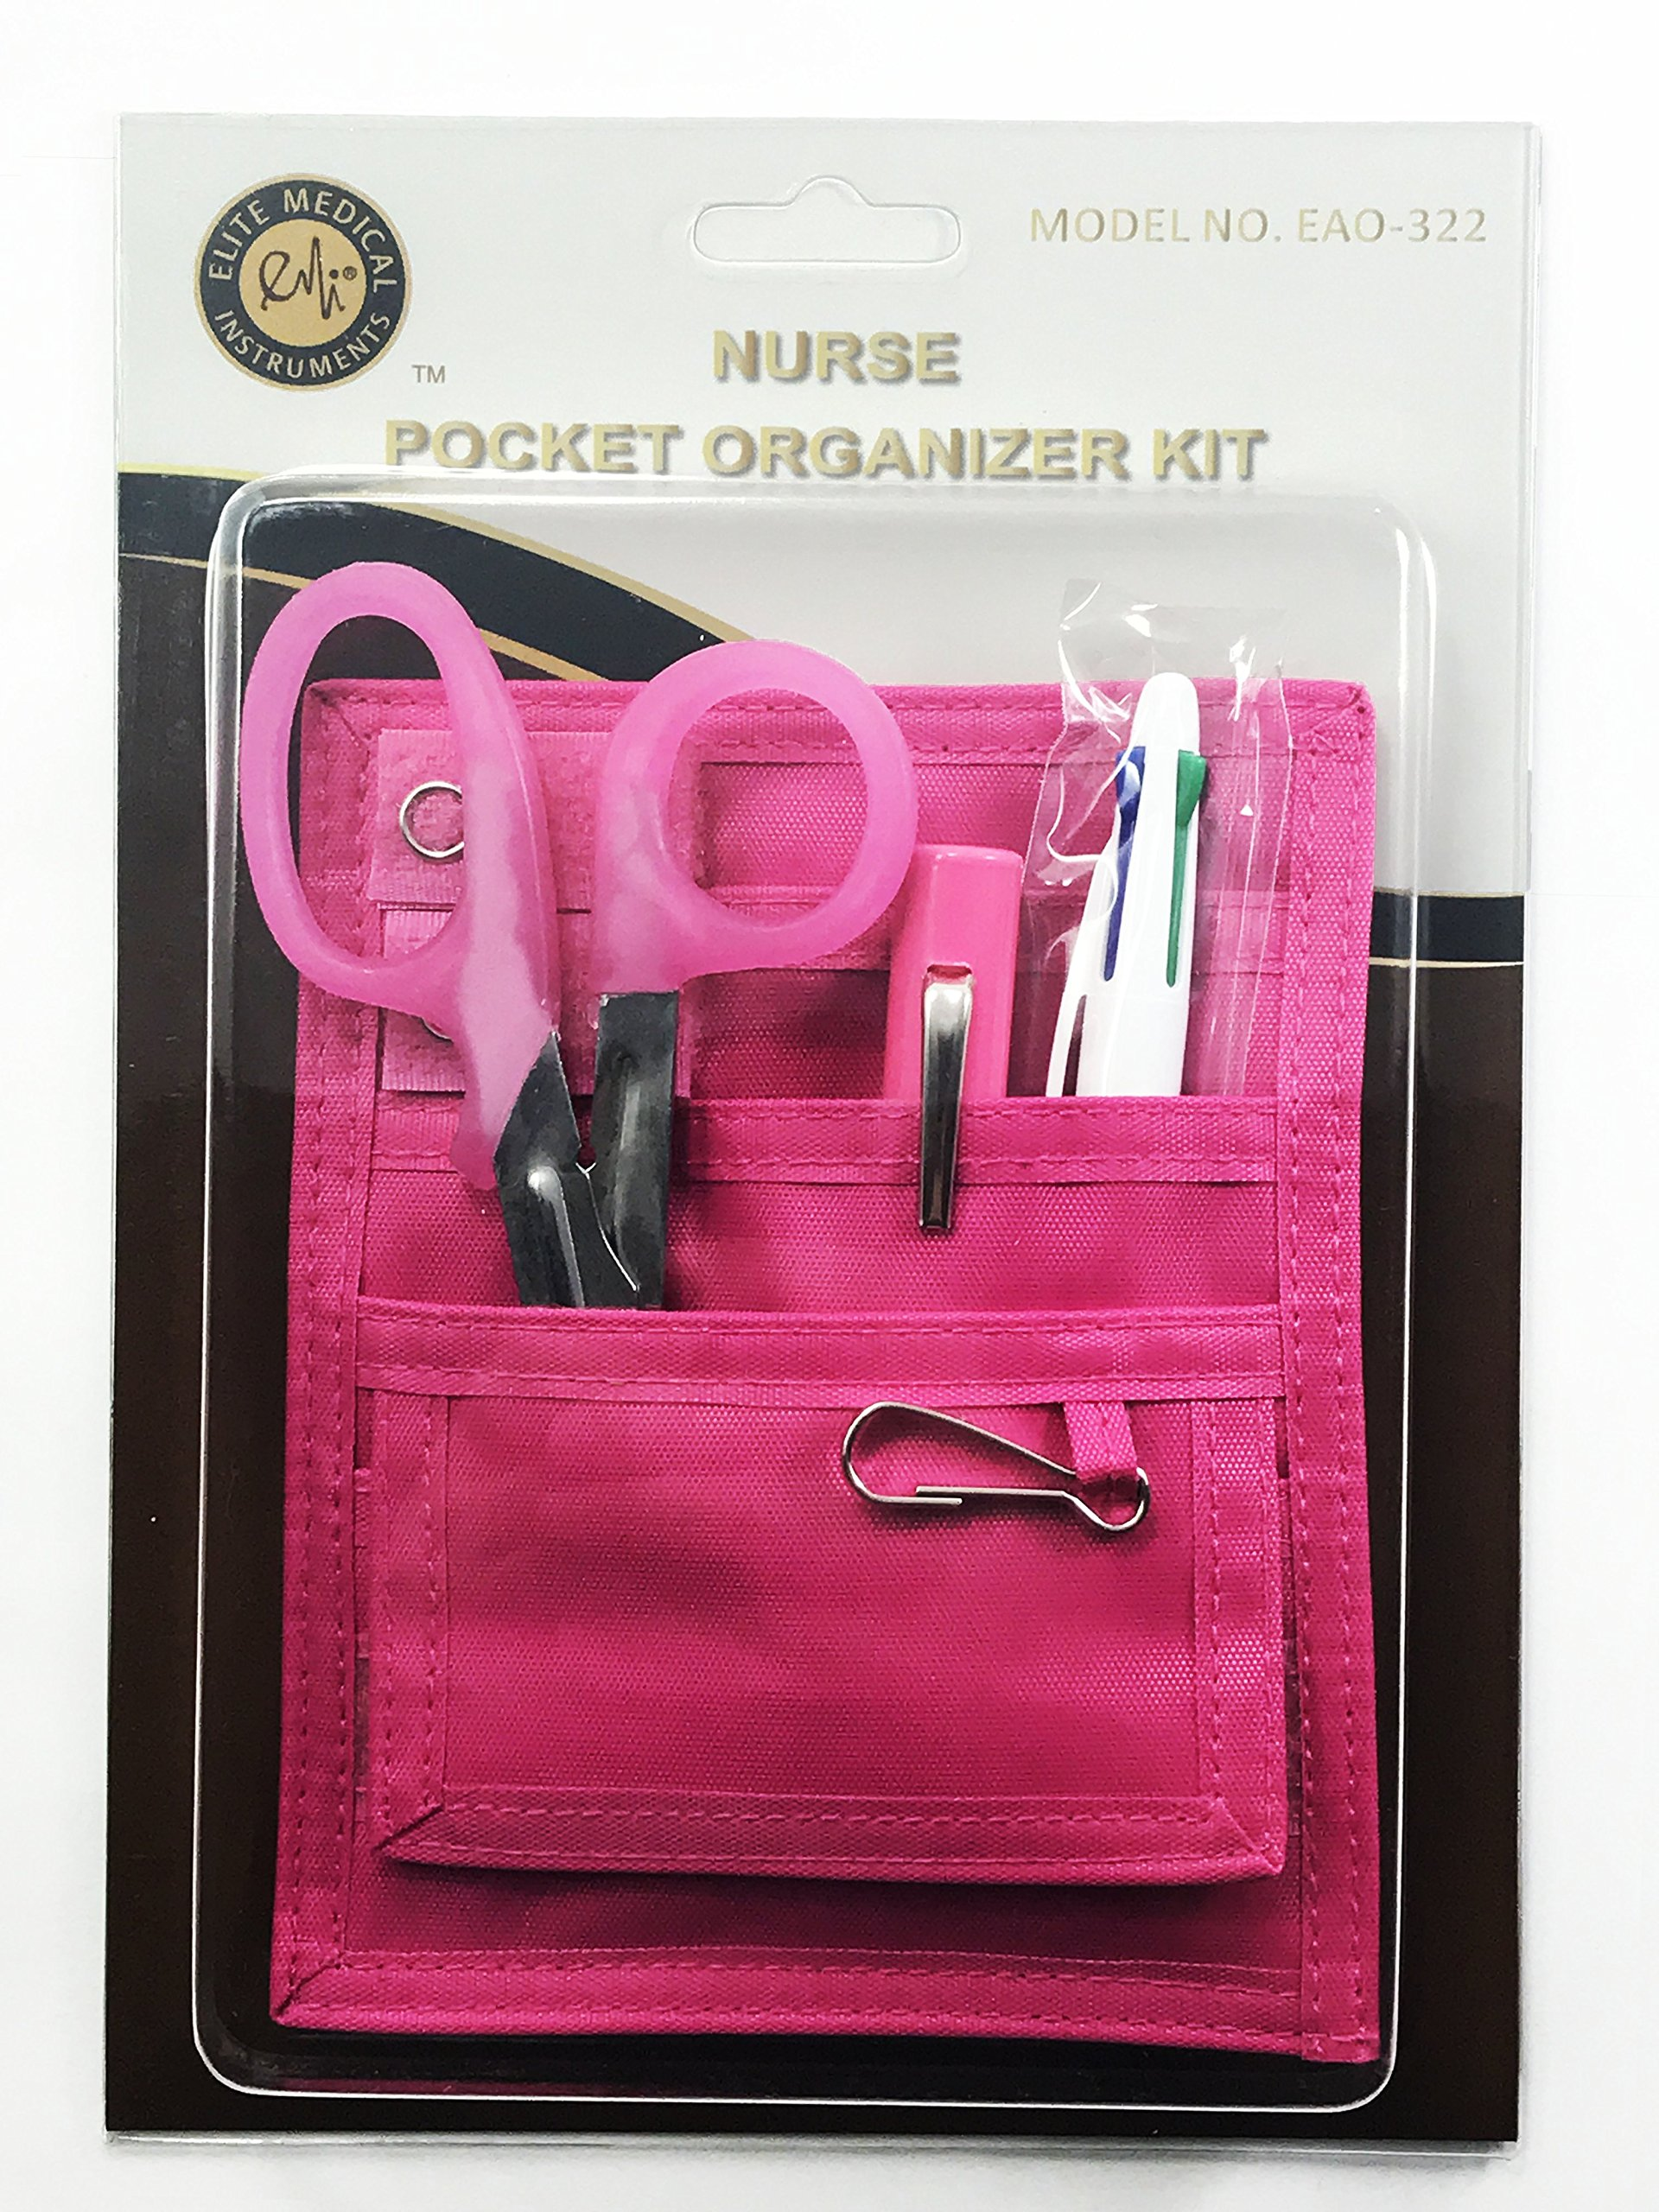 EMI Nurse Pocket PINK Organizer 4 Piece Kit with Pink Scissors 32101-Pink